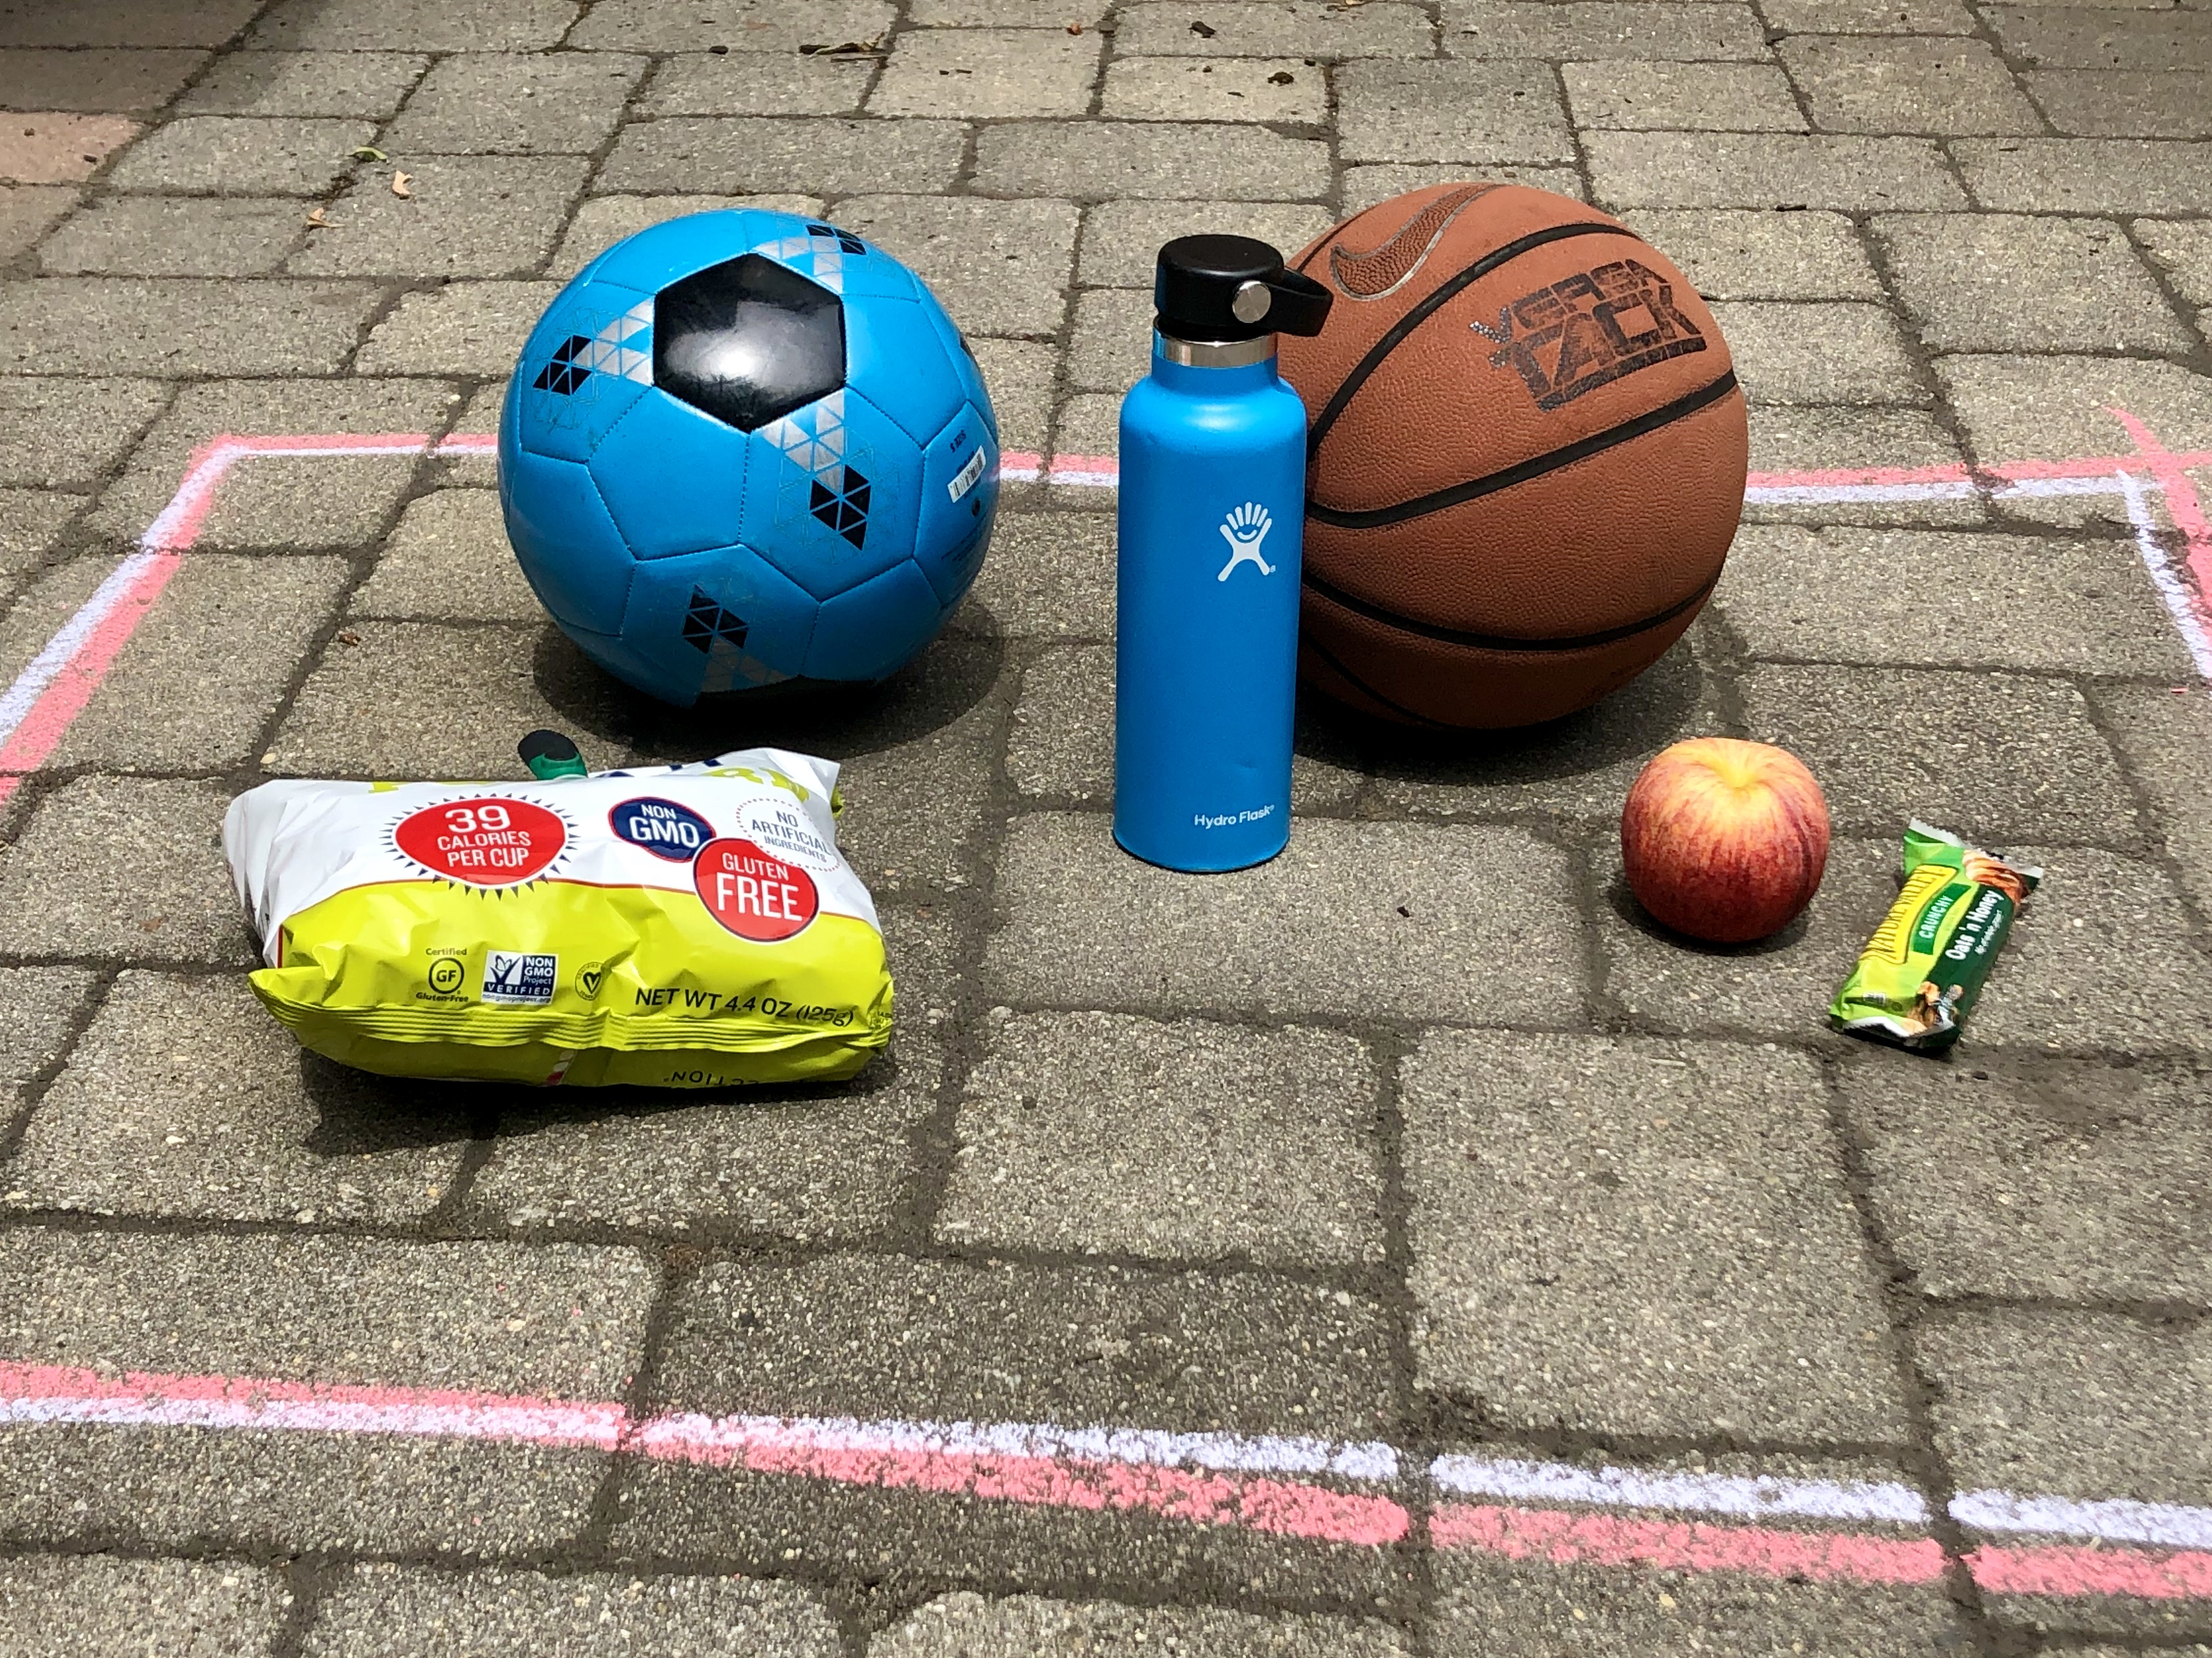 A soccer ball, Hydroflask water bottle, basketball, and various snacks inside a chalk-drawn square. Photo courtesy of Lauren Choy.